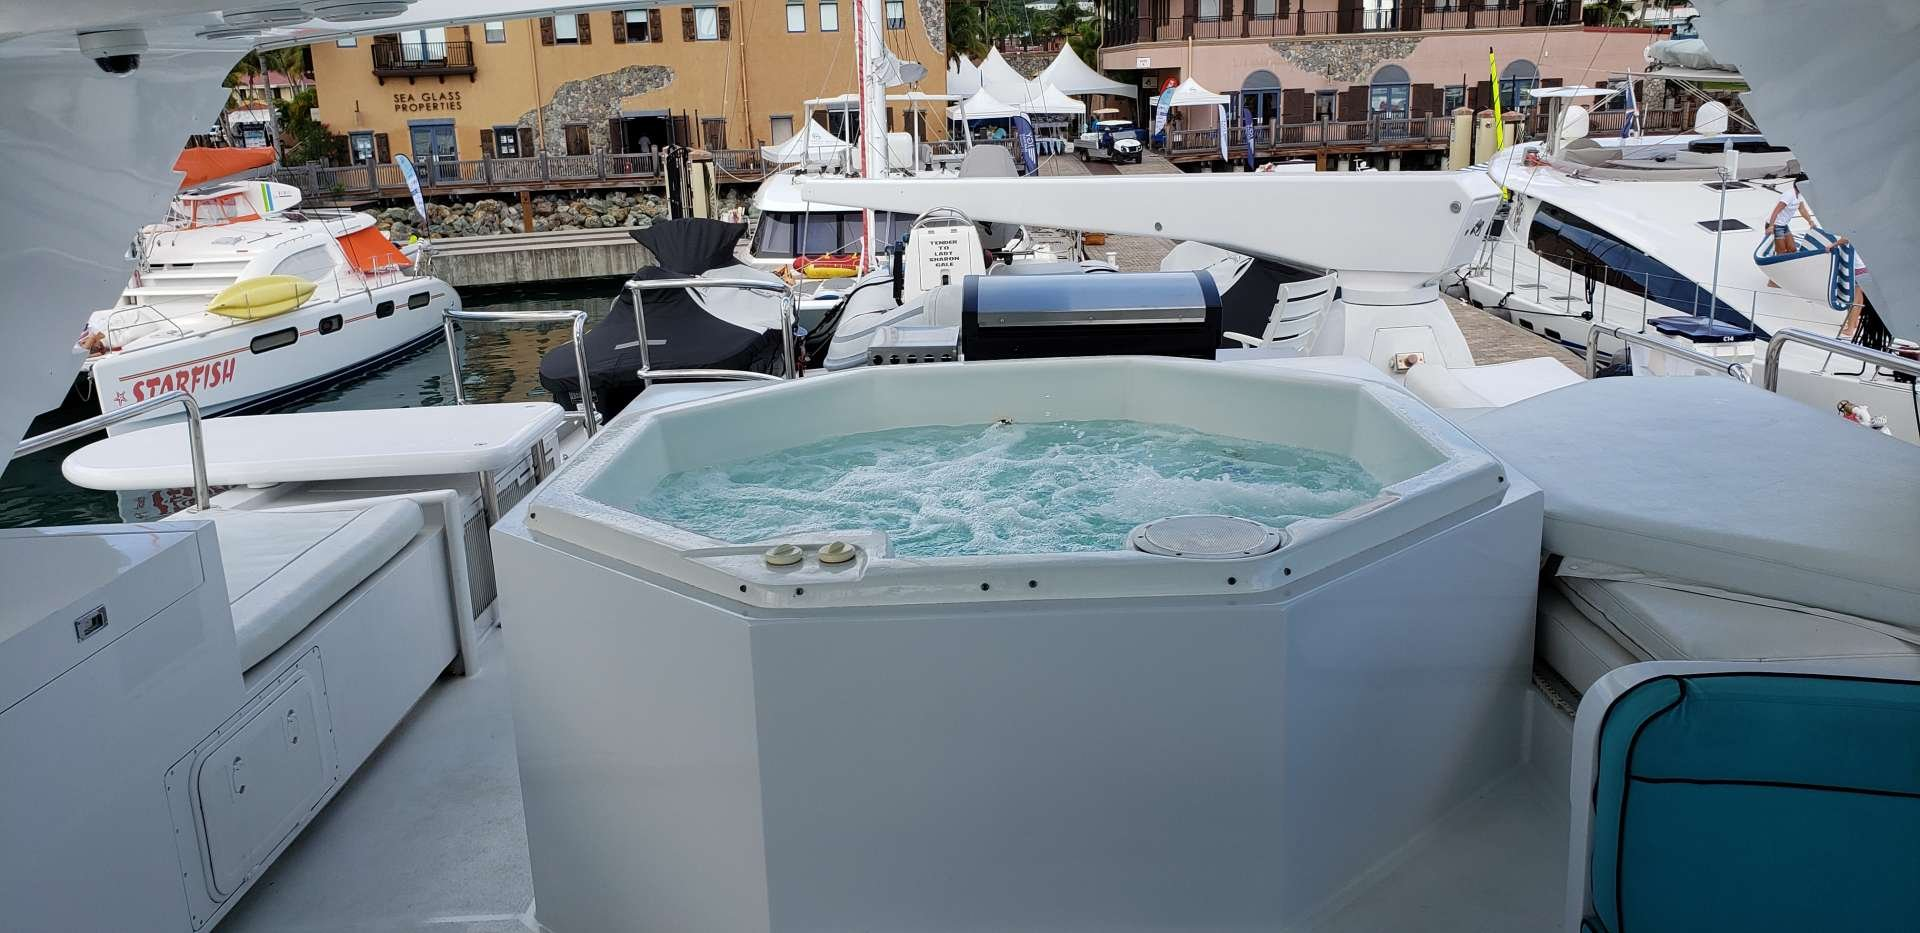 Motor Yacht 'LADY SHARON GALE' Jacuzzi area looking aft, 10 PAX, 4 Crew, 112.00 Ft, 34.00 Meters, Built 1998, Broward, Refit Year 2018